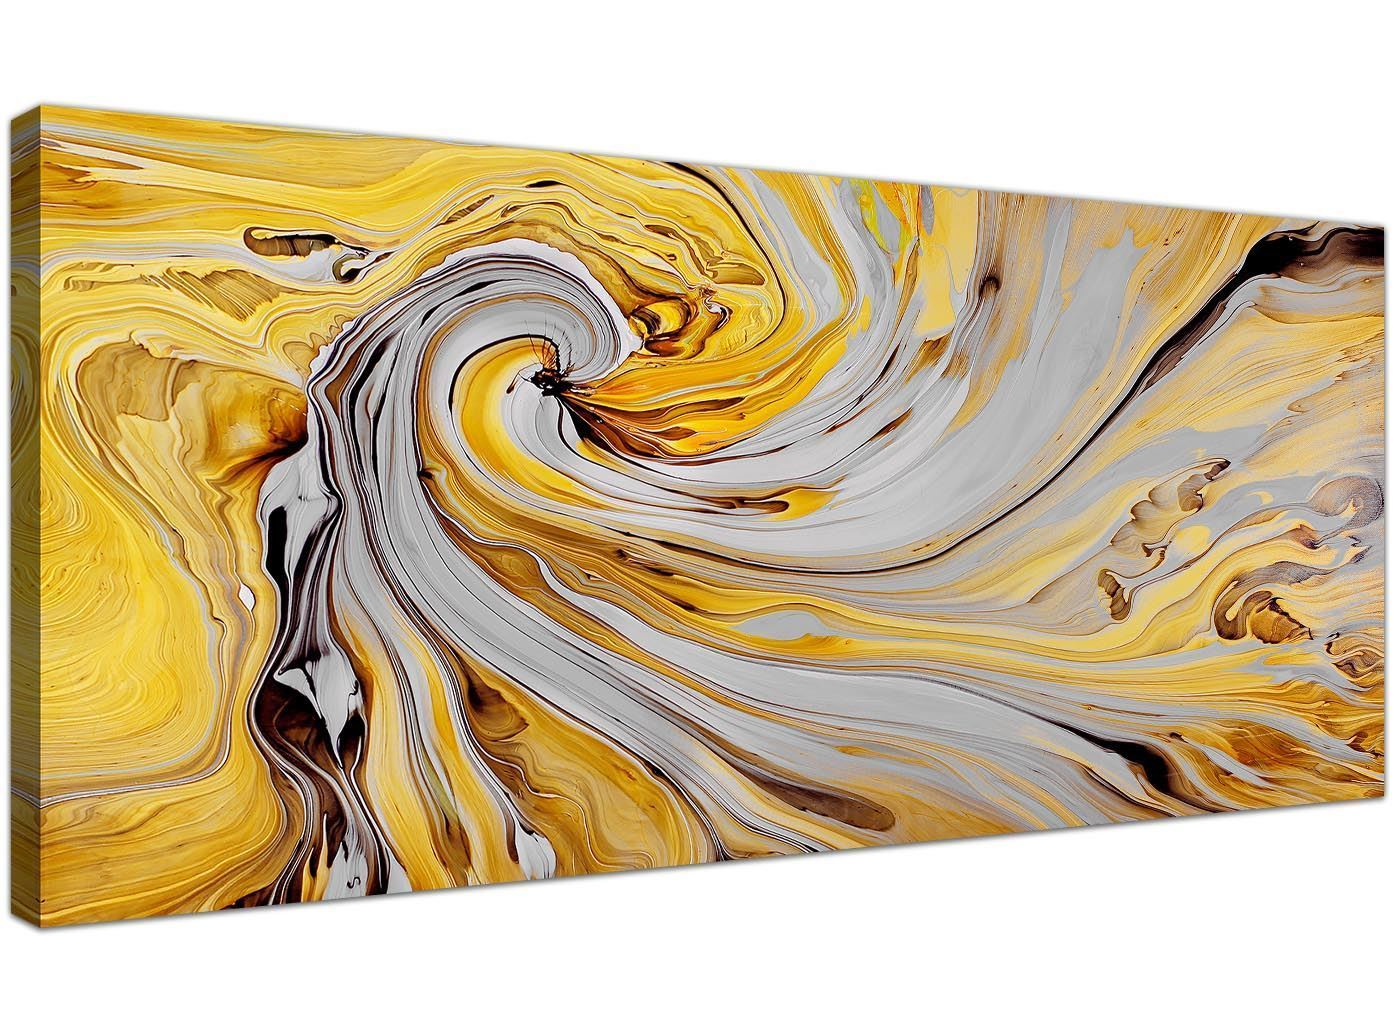 HD Large Abstract Yellow Wall Art Prints Canvas Wall Art Print ...